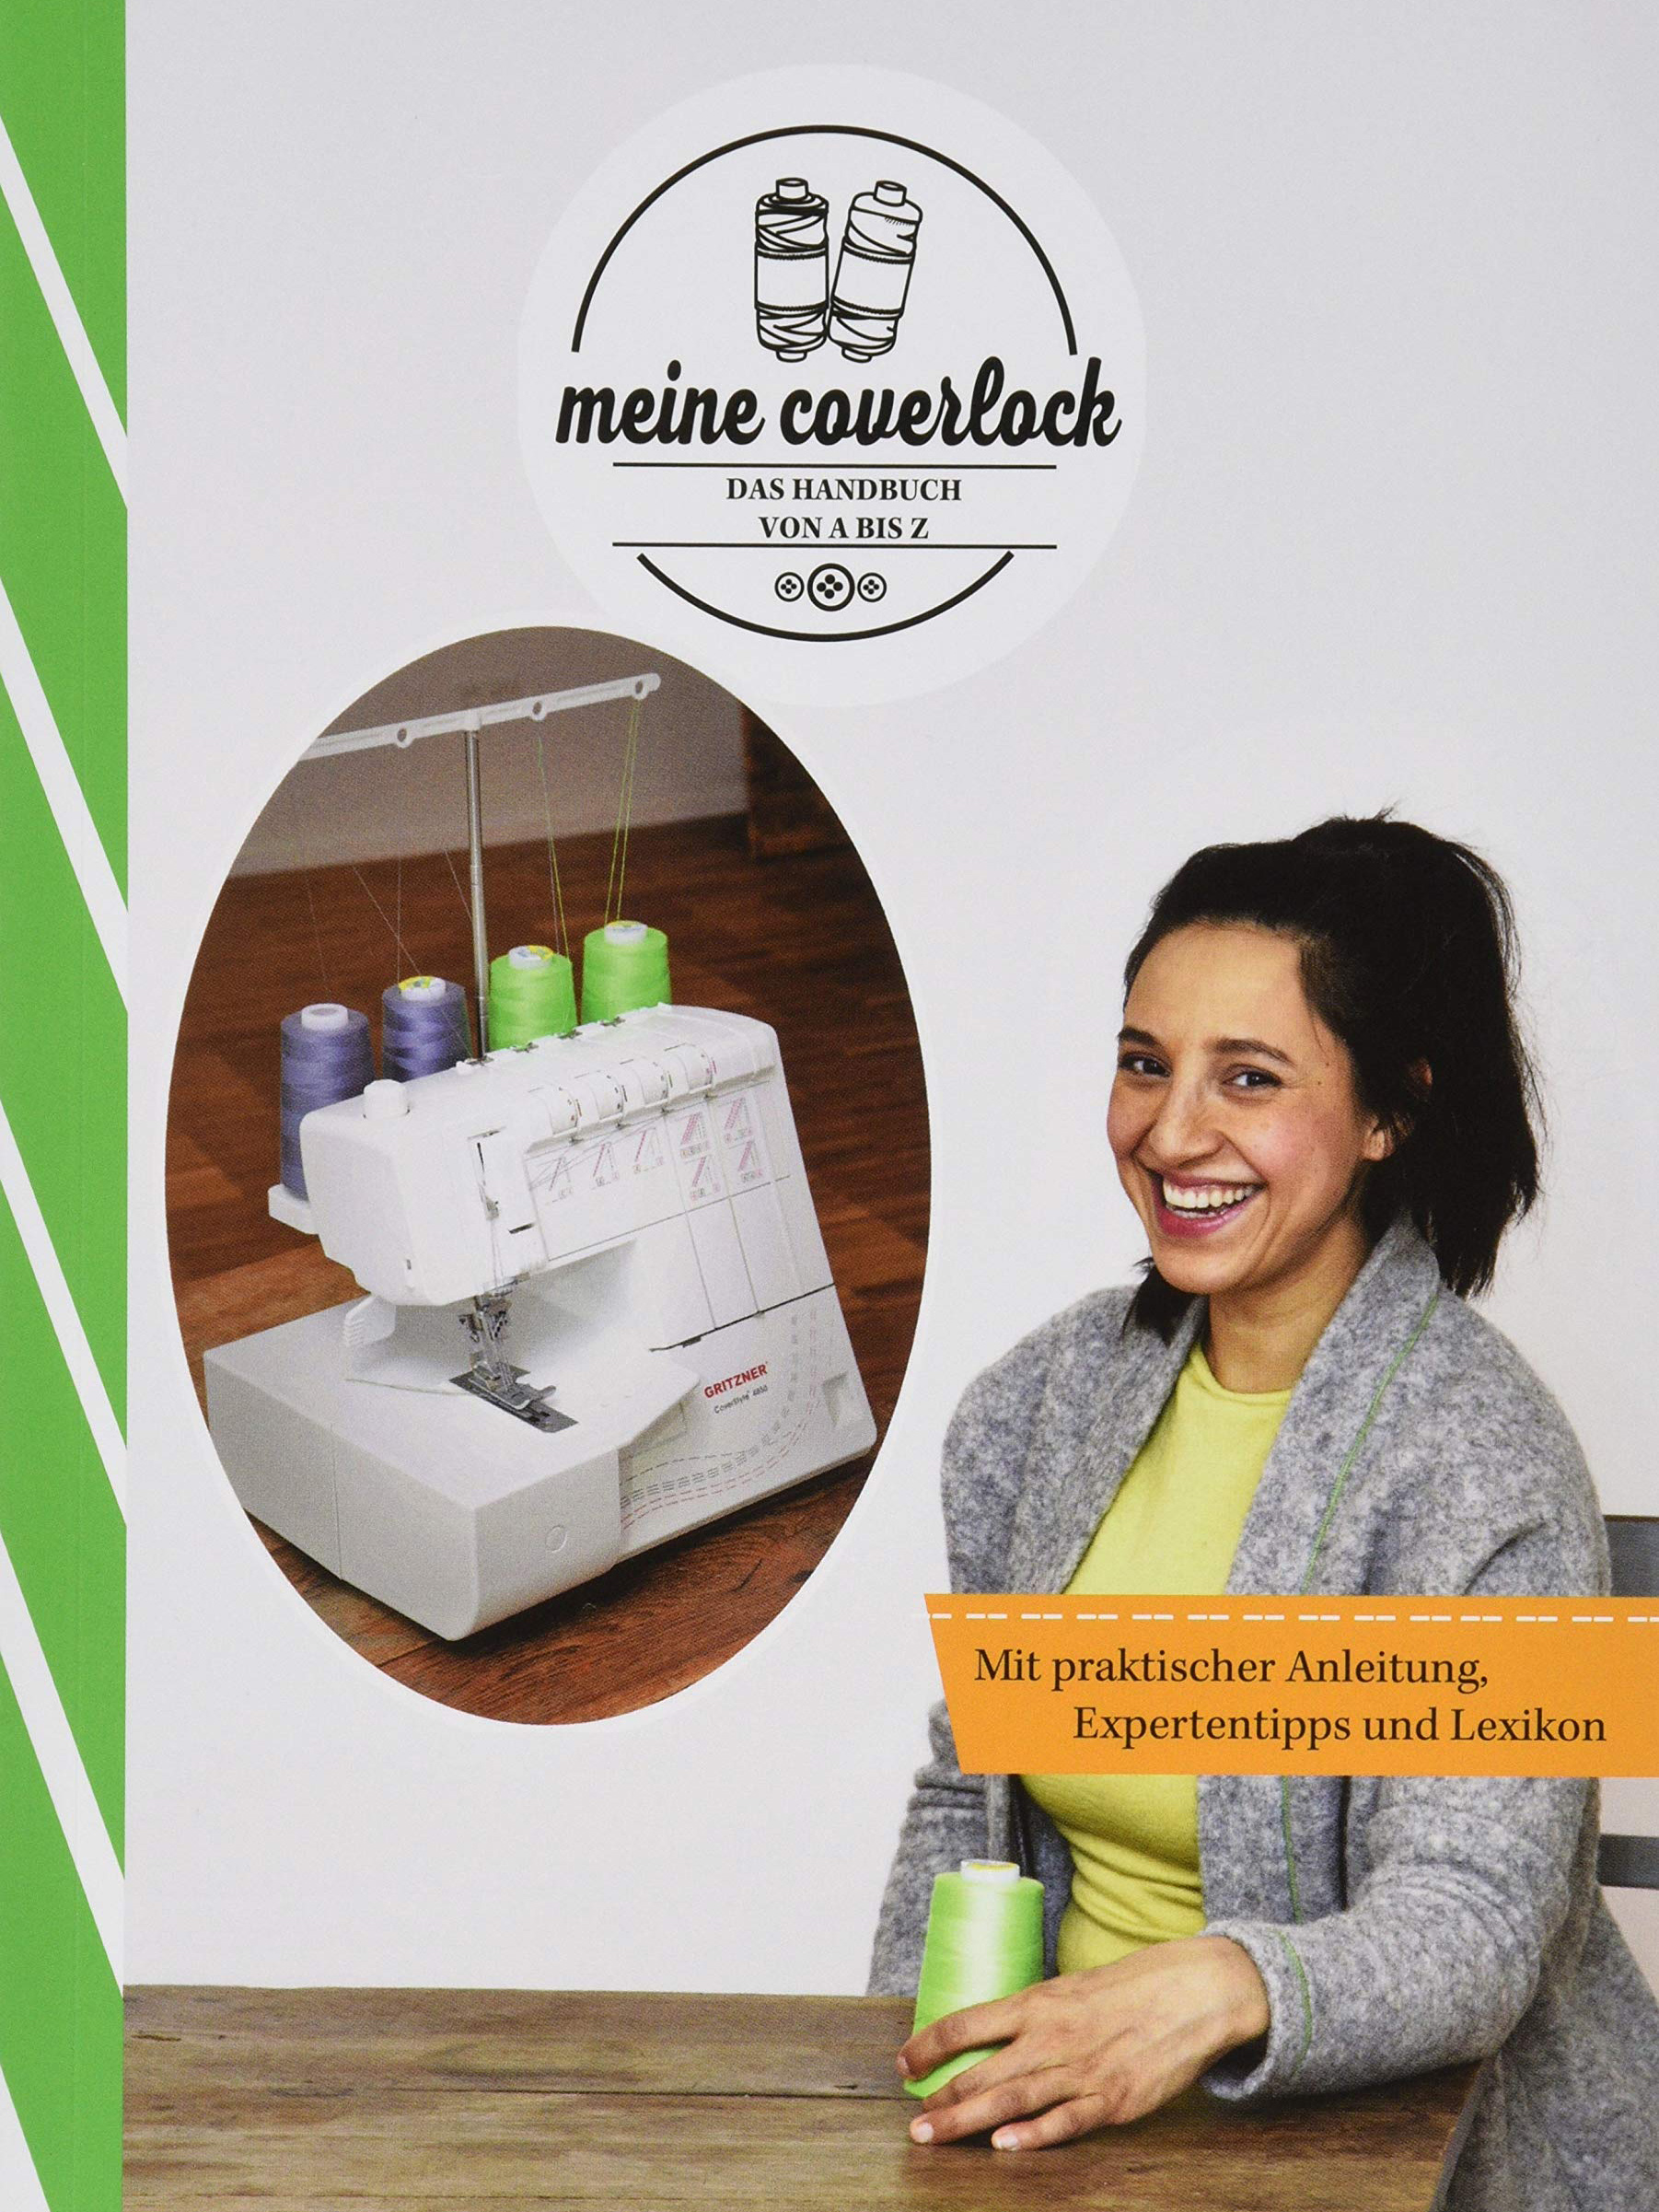 Gritzner Coverlock 4850 Coverstyle